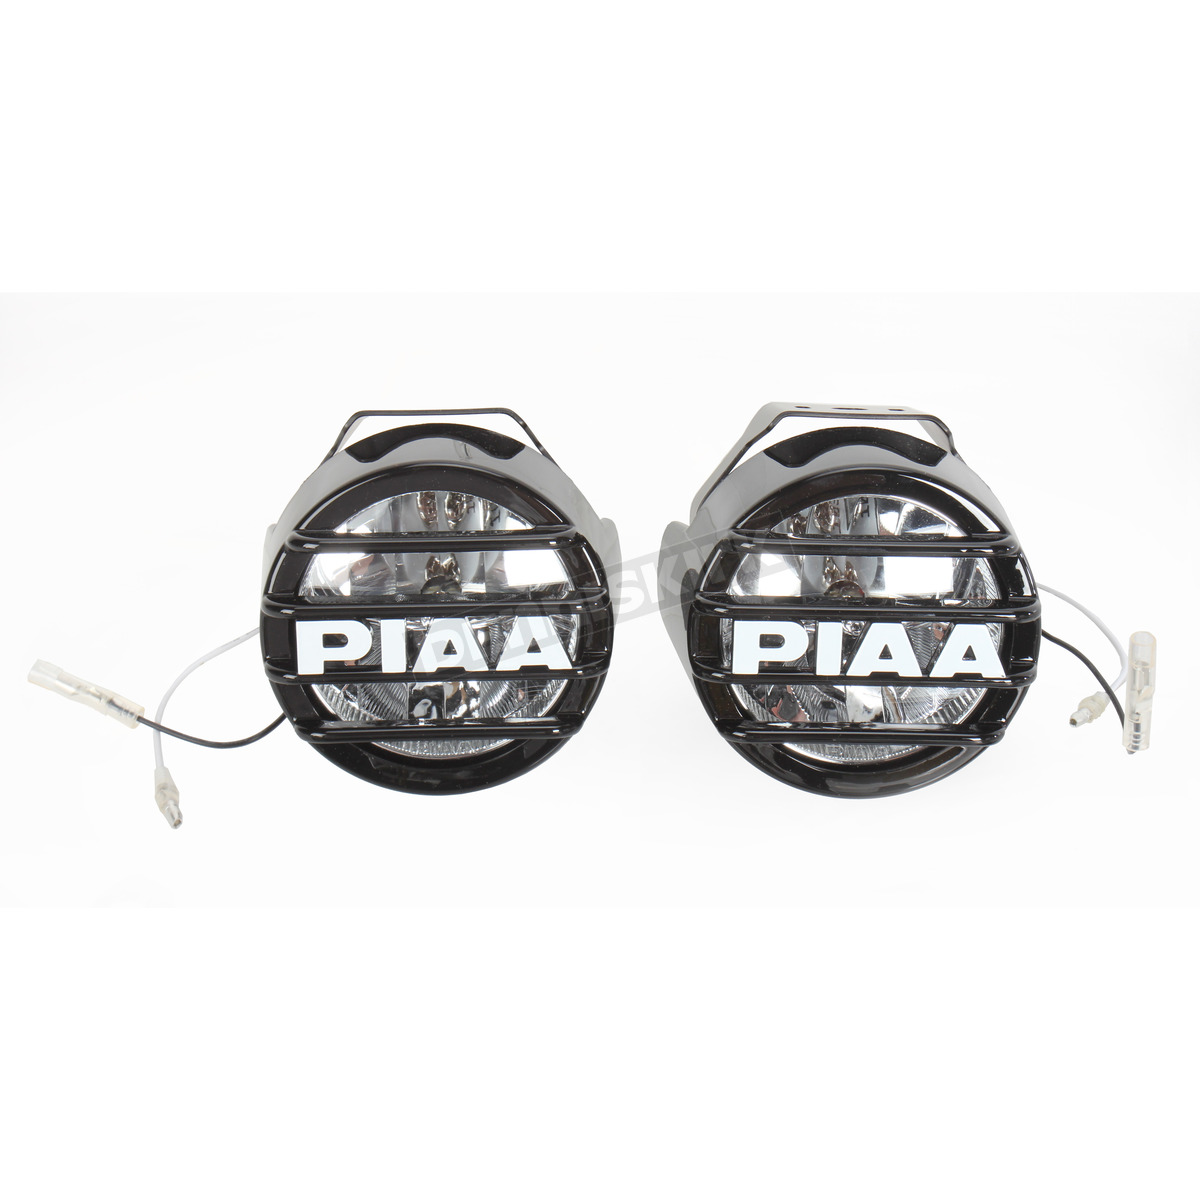 Piaa Lp530 Led Driving Light Kit